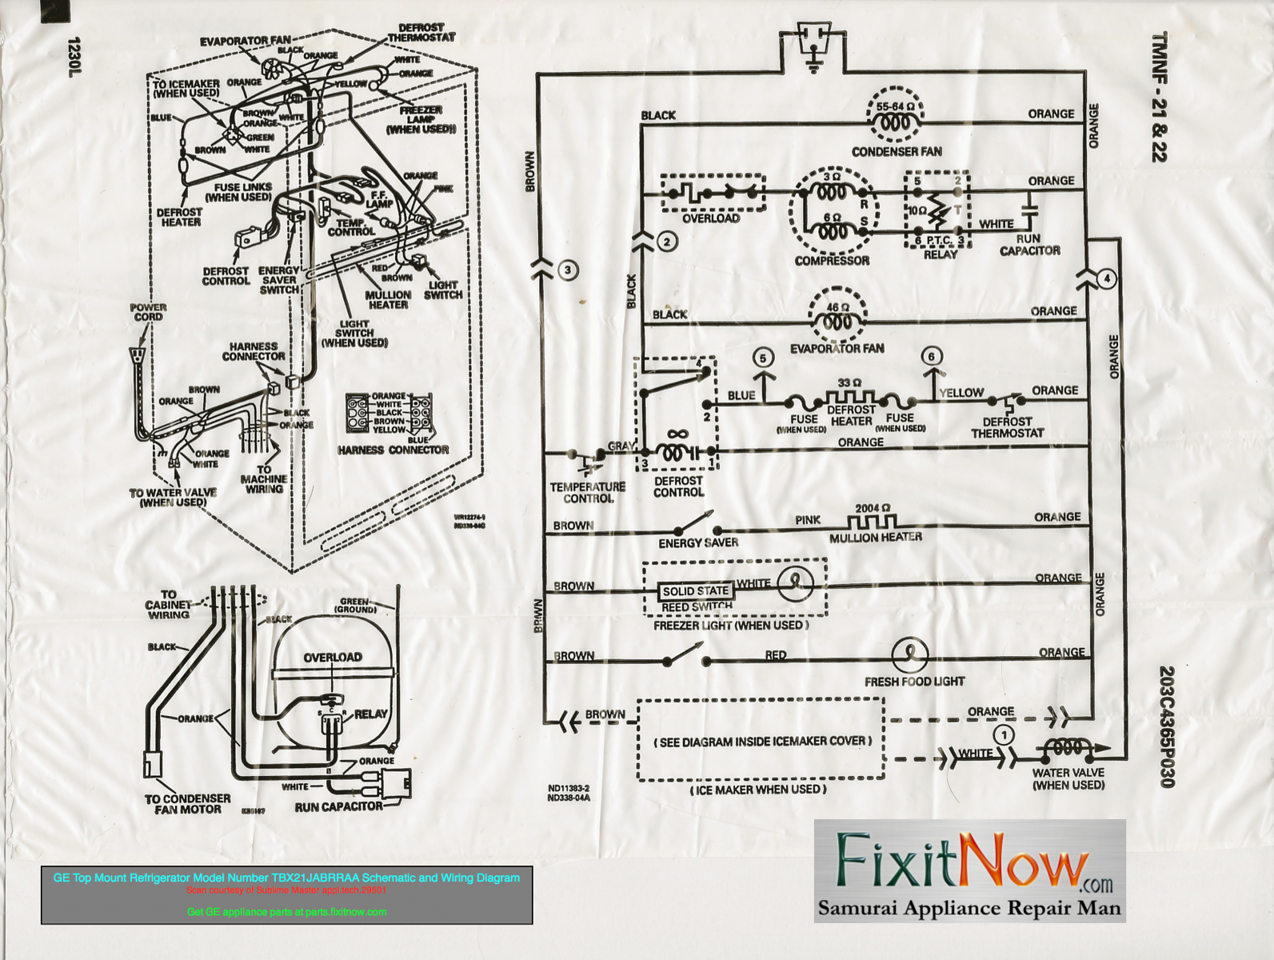 4904374061_e8eb3df6c6_o X2 wiring diagrams and schematics appliantology ge refrigerator wiring diagram at n-0.co